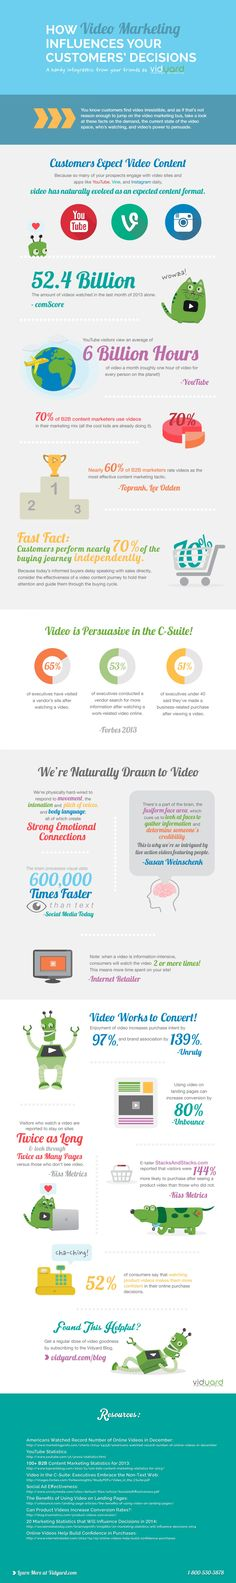 How Video Marketing Influences Your Customers' Decisions